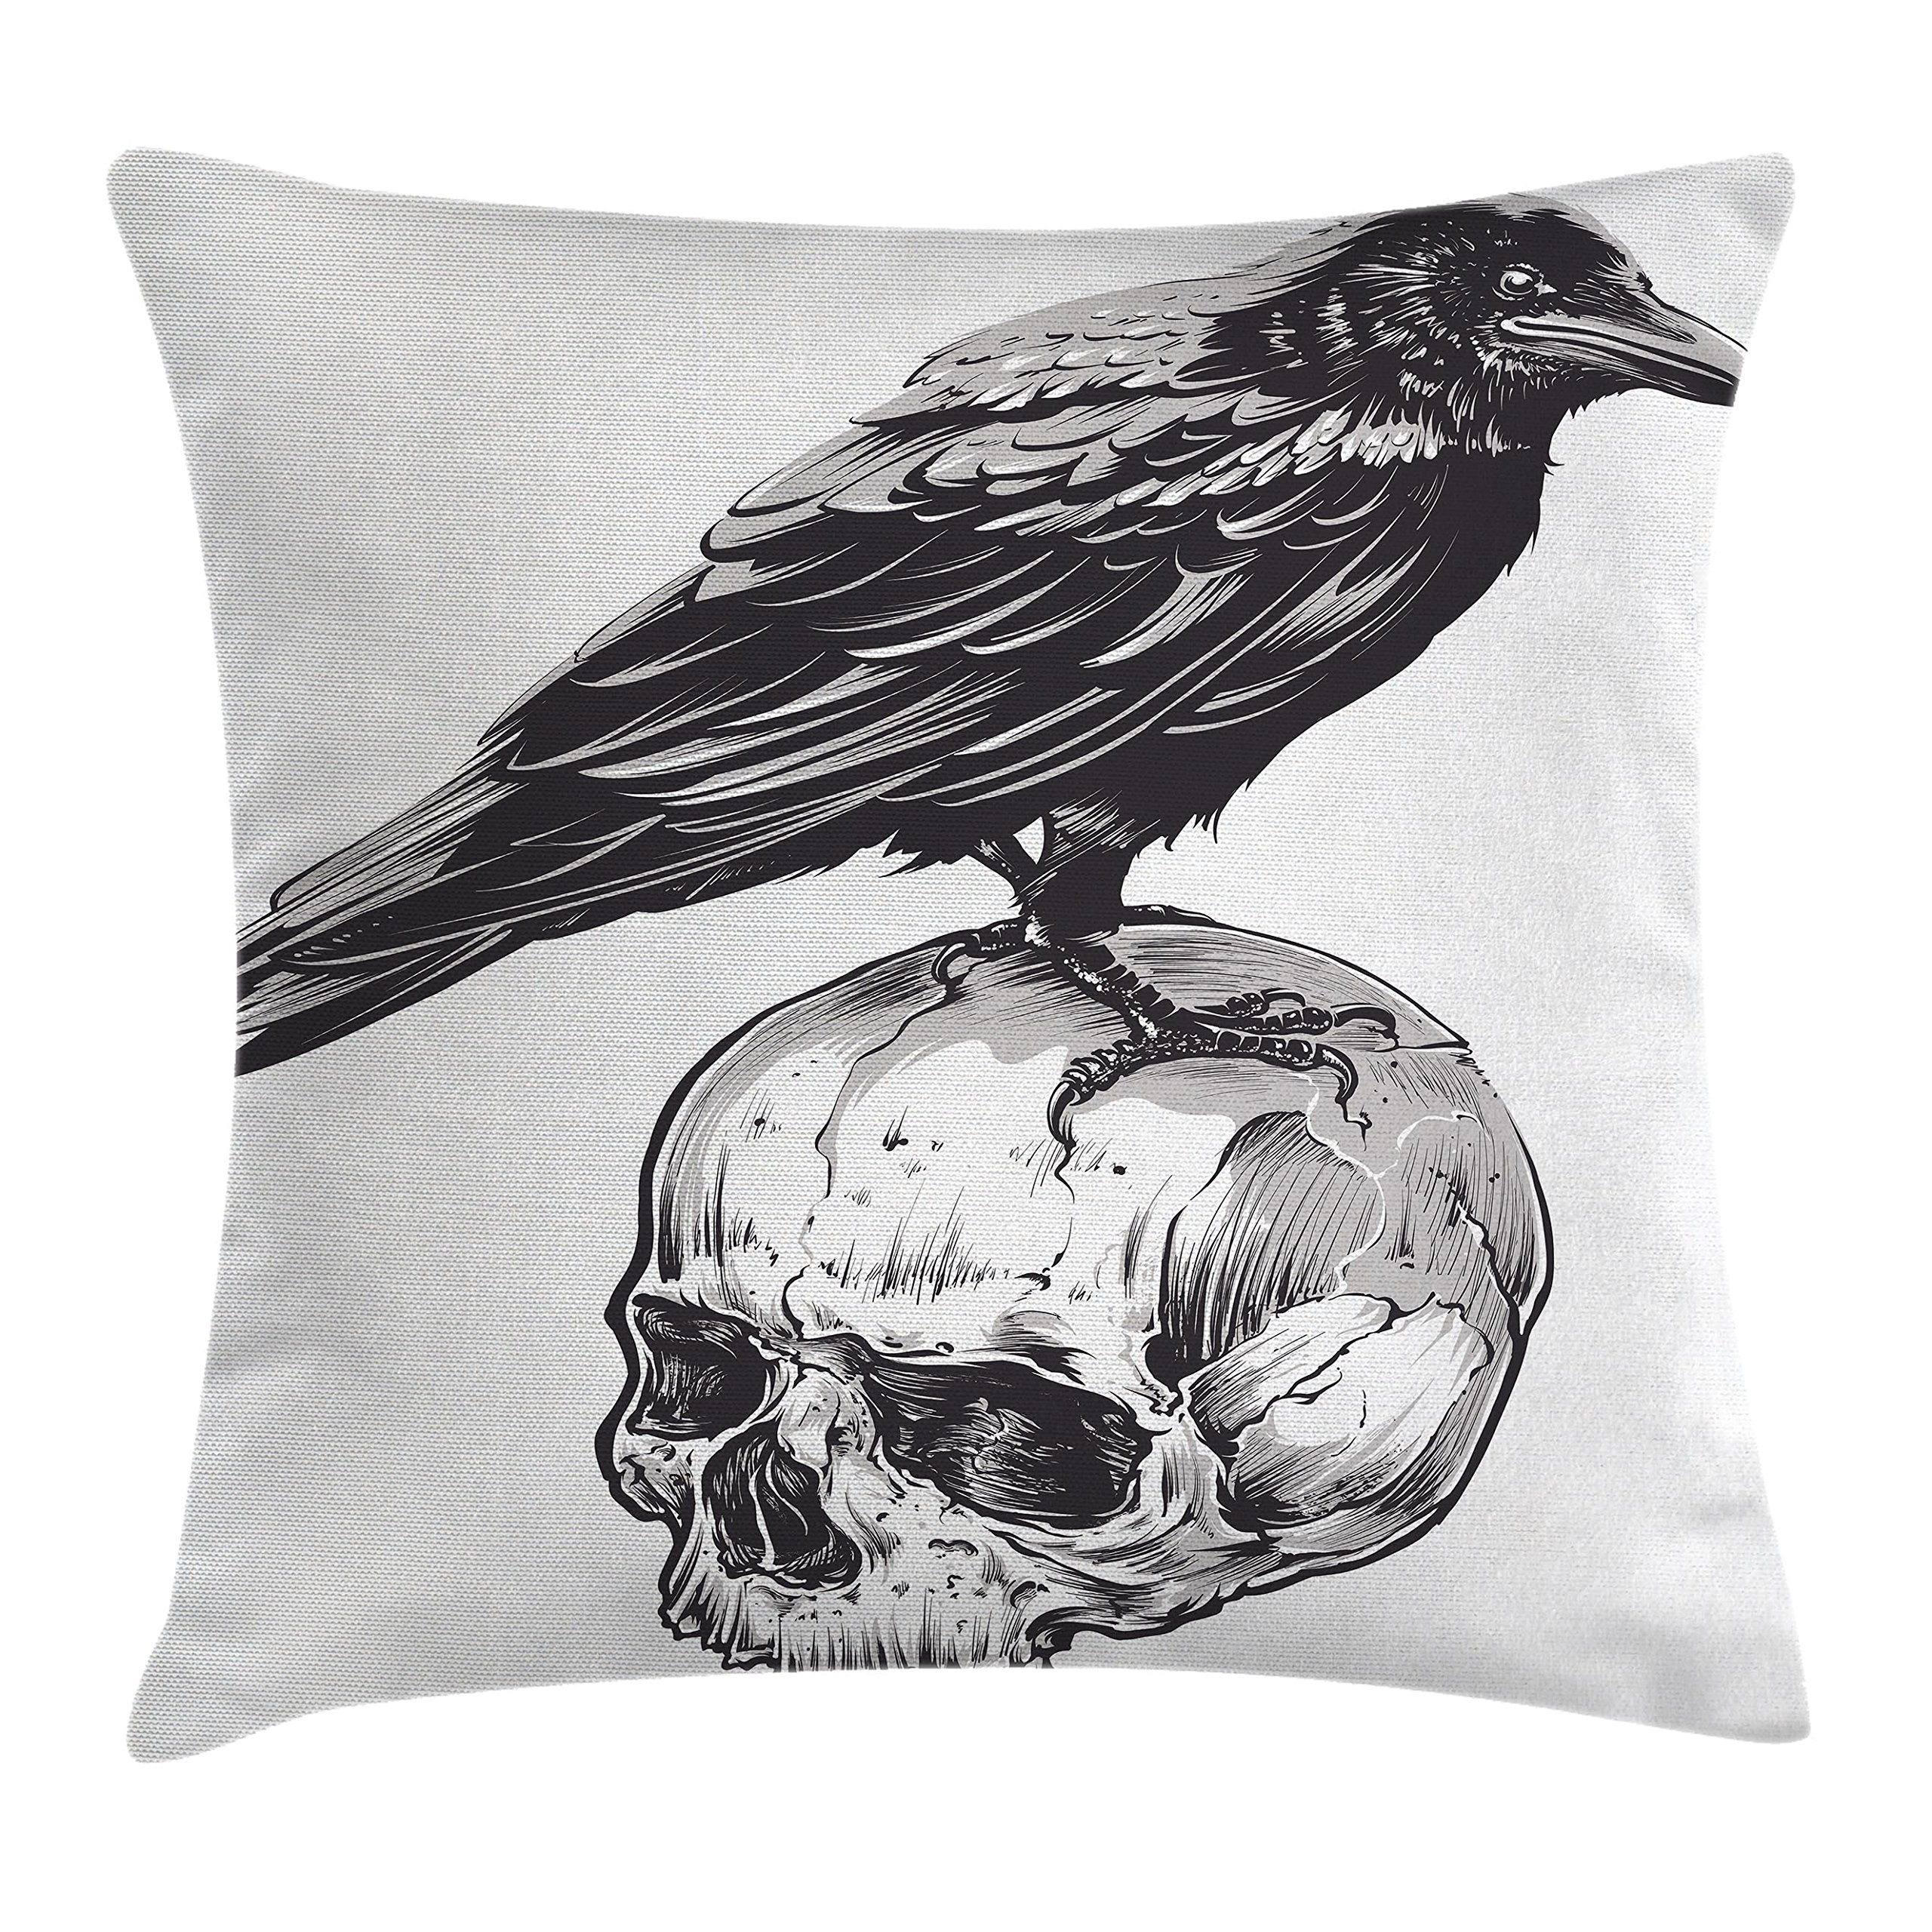 Ambesonne Scary Throw Pillow Cushion Cover, Scary Movies Theme Crow Bird Sitting on a Human Old Skull Sketchy Image, Decorative Square Accent Pillow Case, 18 X 18 inches, Charcoal Grey White